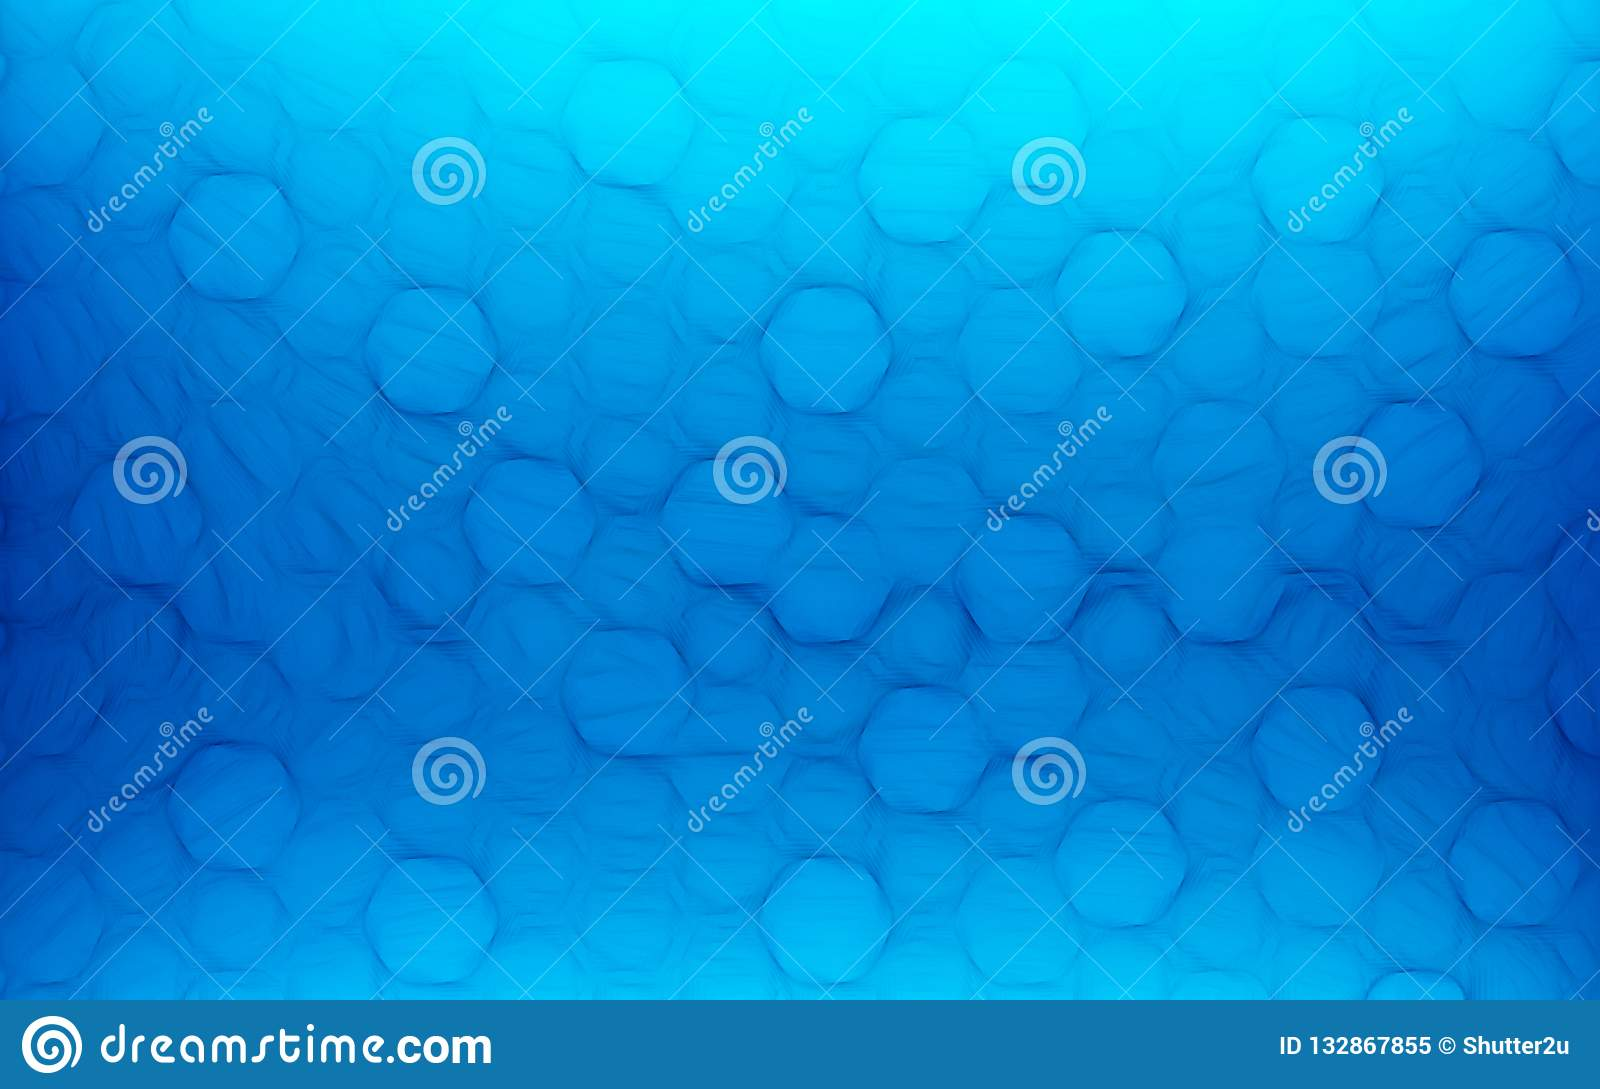 Blue honeycomb abstract background. Wallpaper and texture concept. Minimalism theme